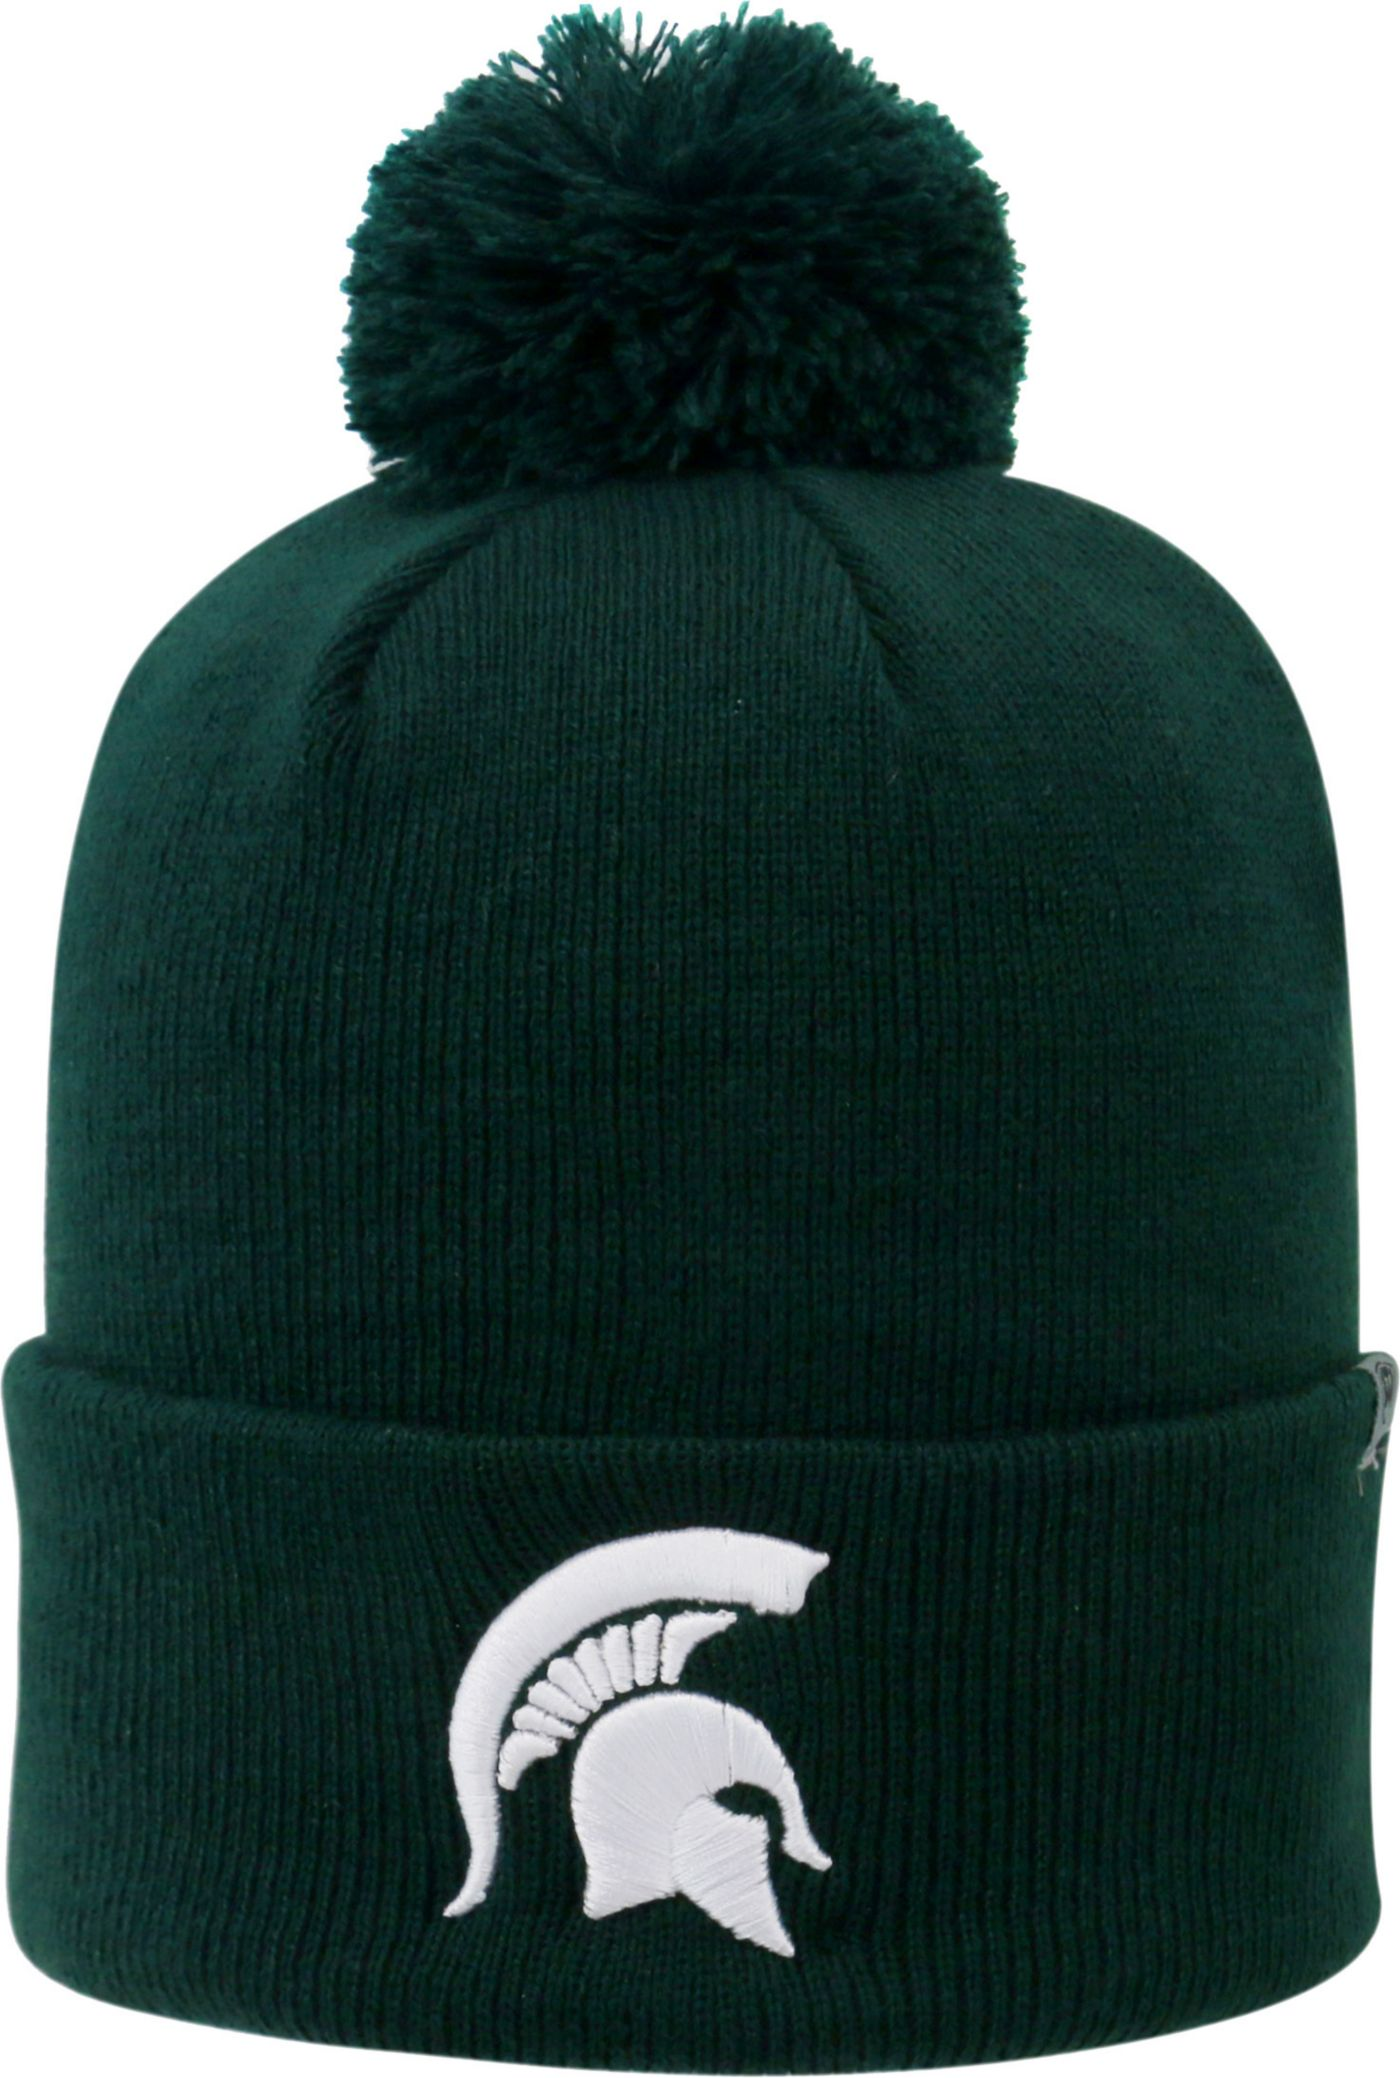 Top of the World Men's Michigan State Spartans Green Pom Knit Beanie